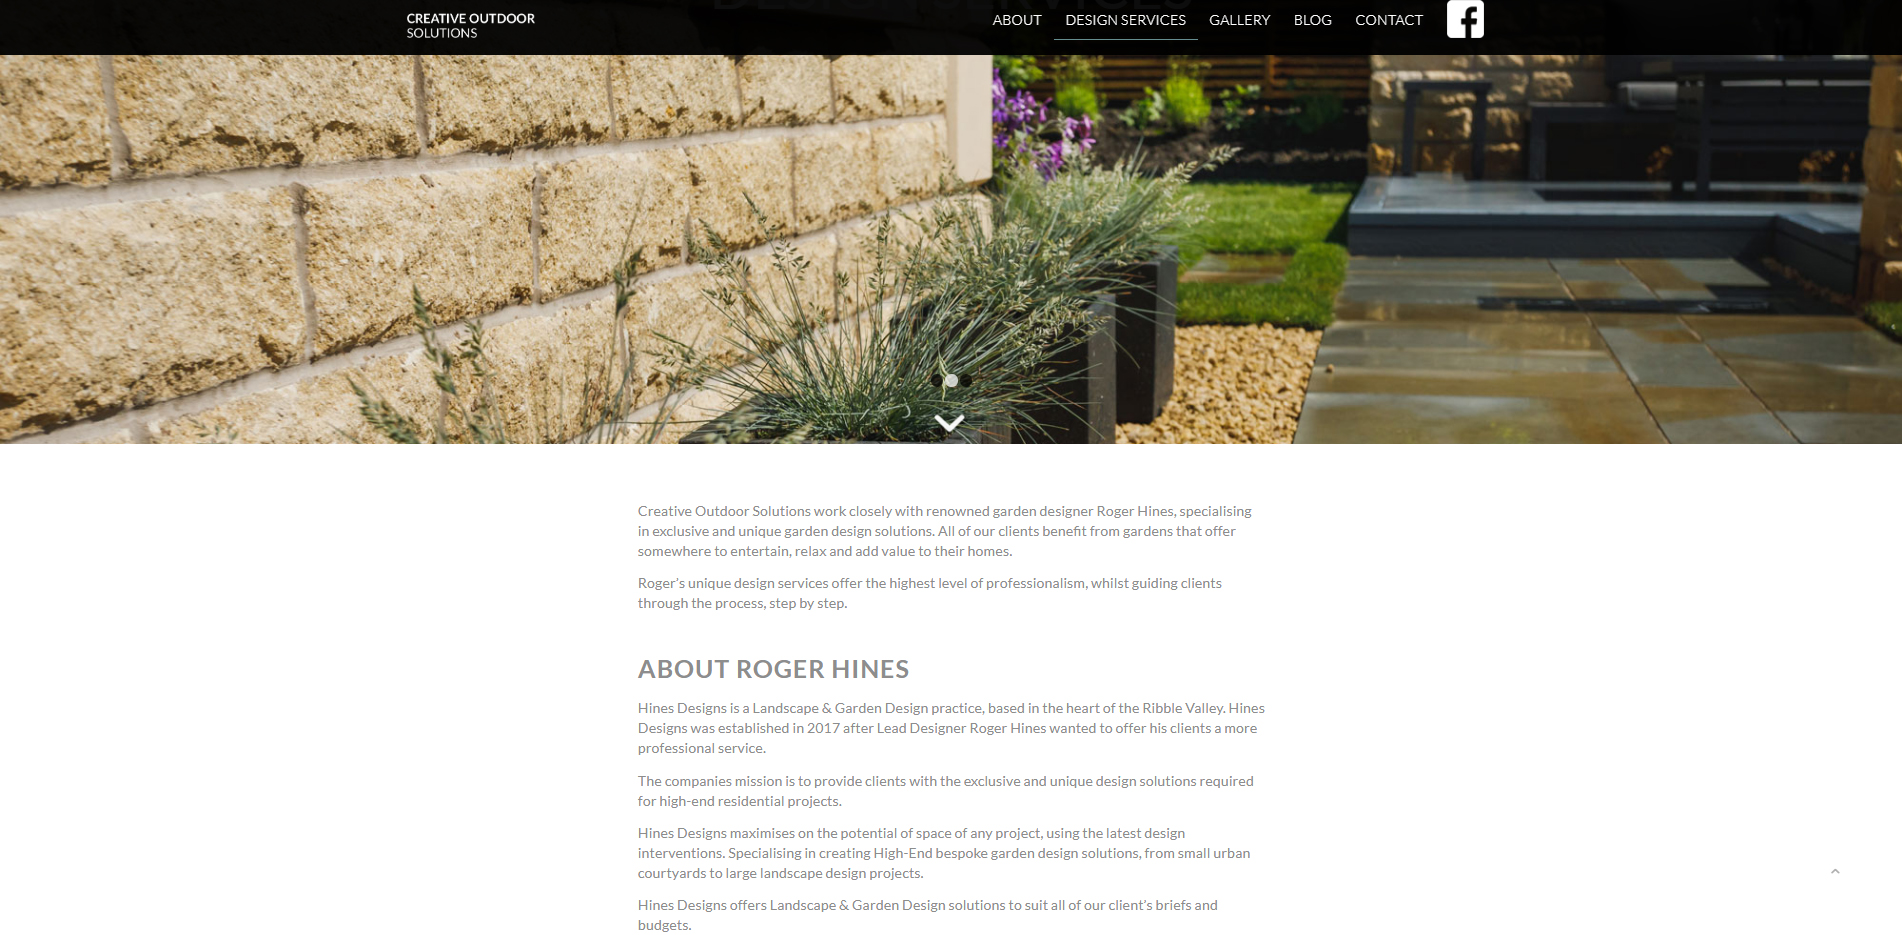 Creative Outdoor Solutions inner page example